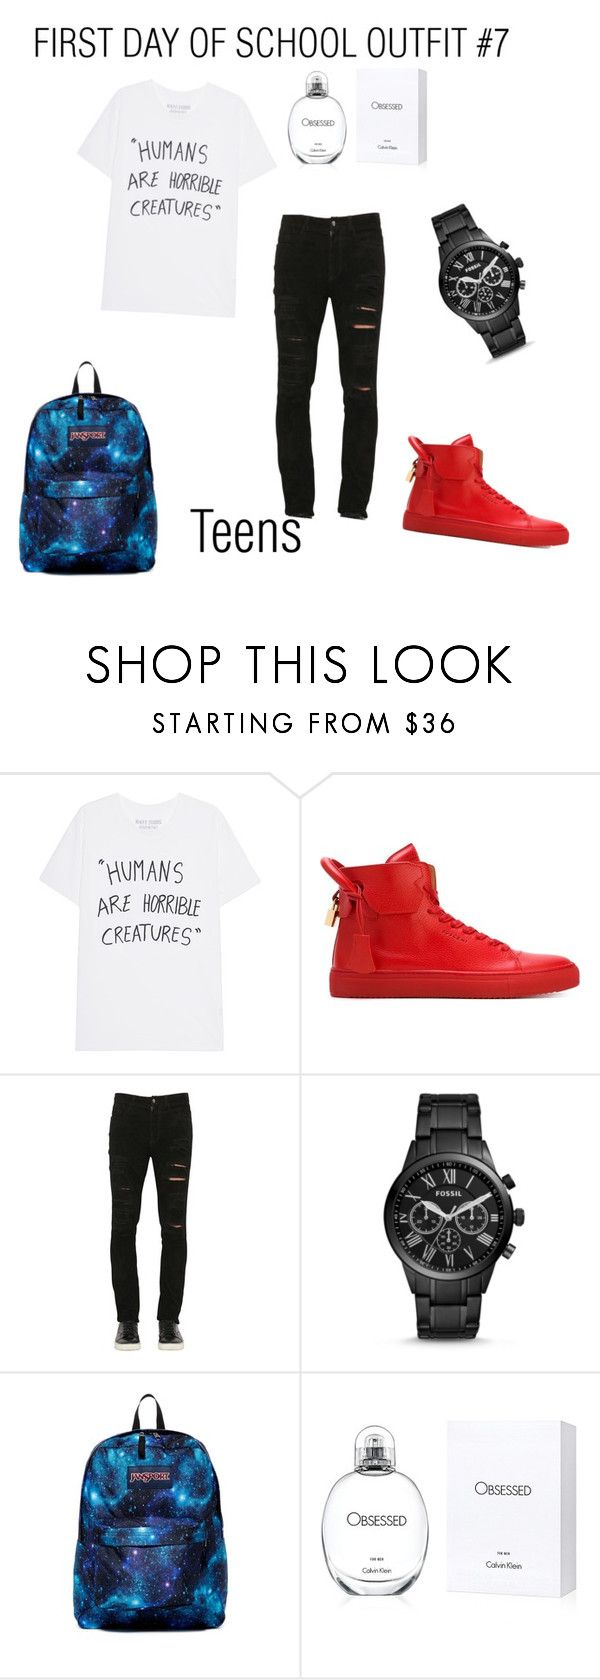 """""""first day of school look book #7"""" by itssnaija ❤ liked on Polyvore featuring BUSCEMI, Giorgio Brato, FOSSIL, JanSport and Calvin Klein"""